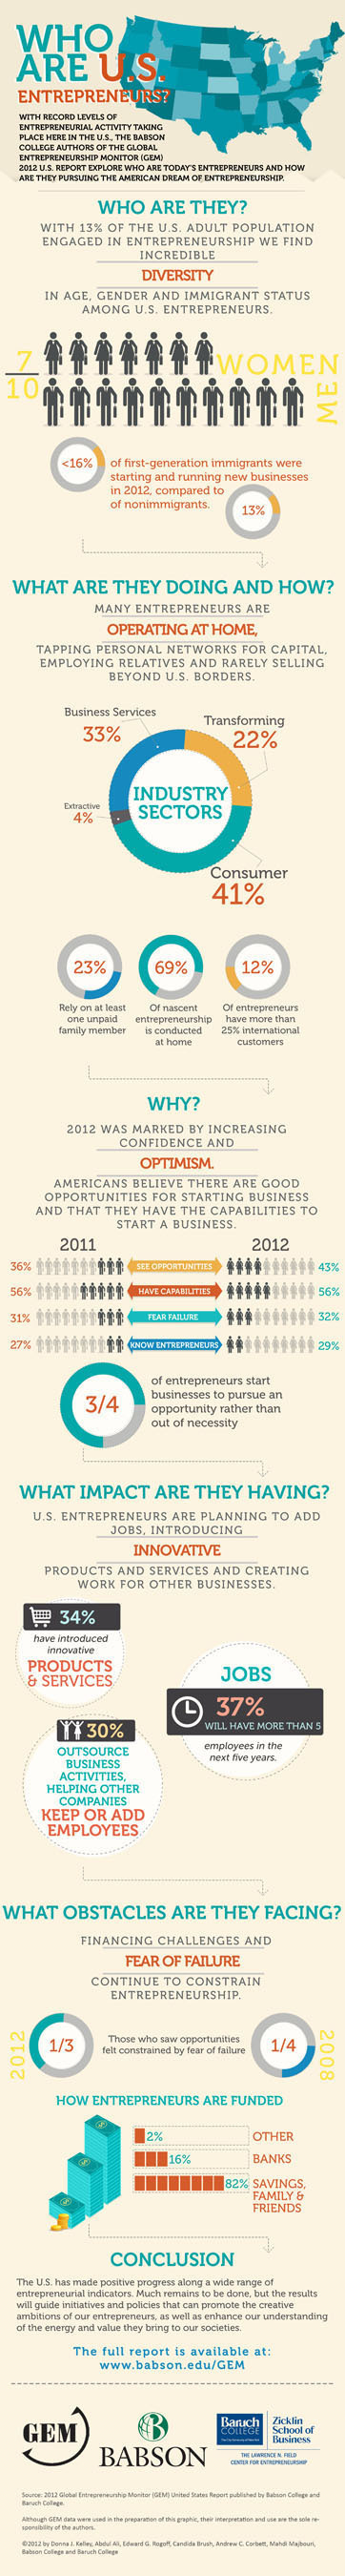 U.S. Entrepreneurship Rates Reach Highest Level In More Than A Decade According To Researchers At